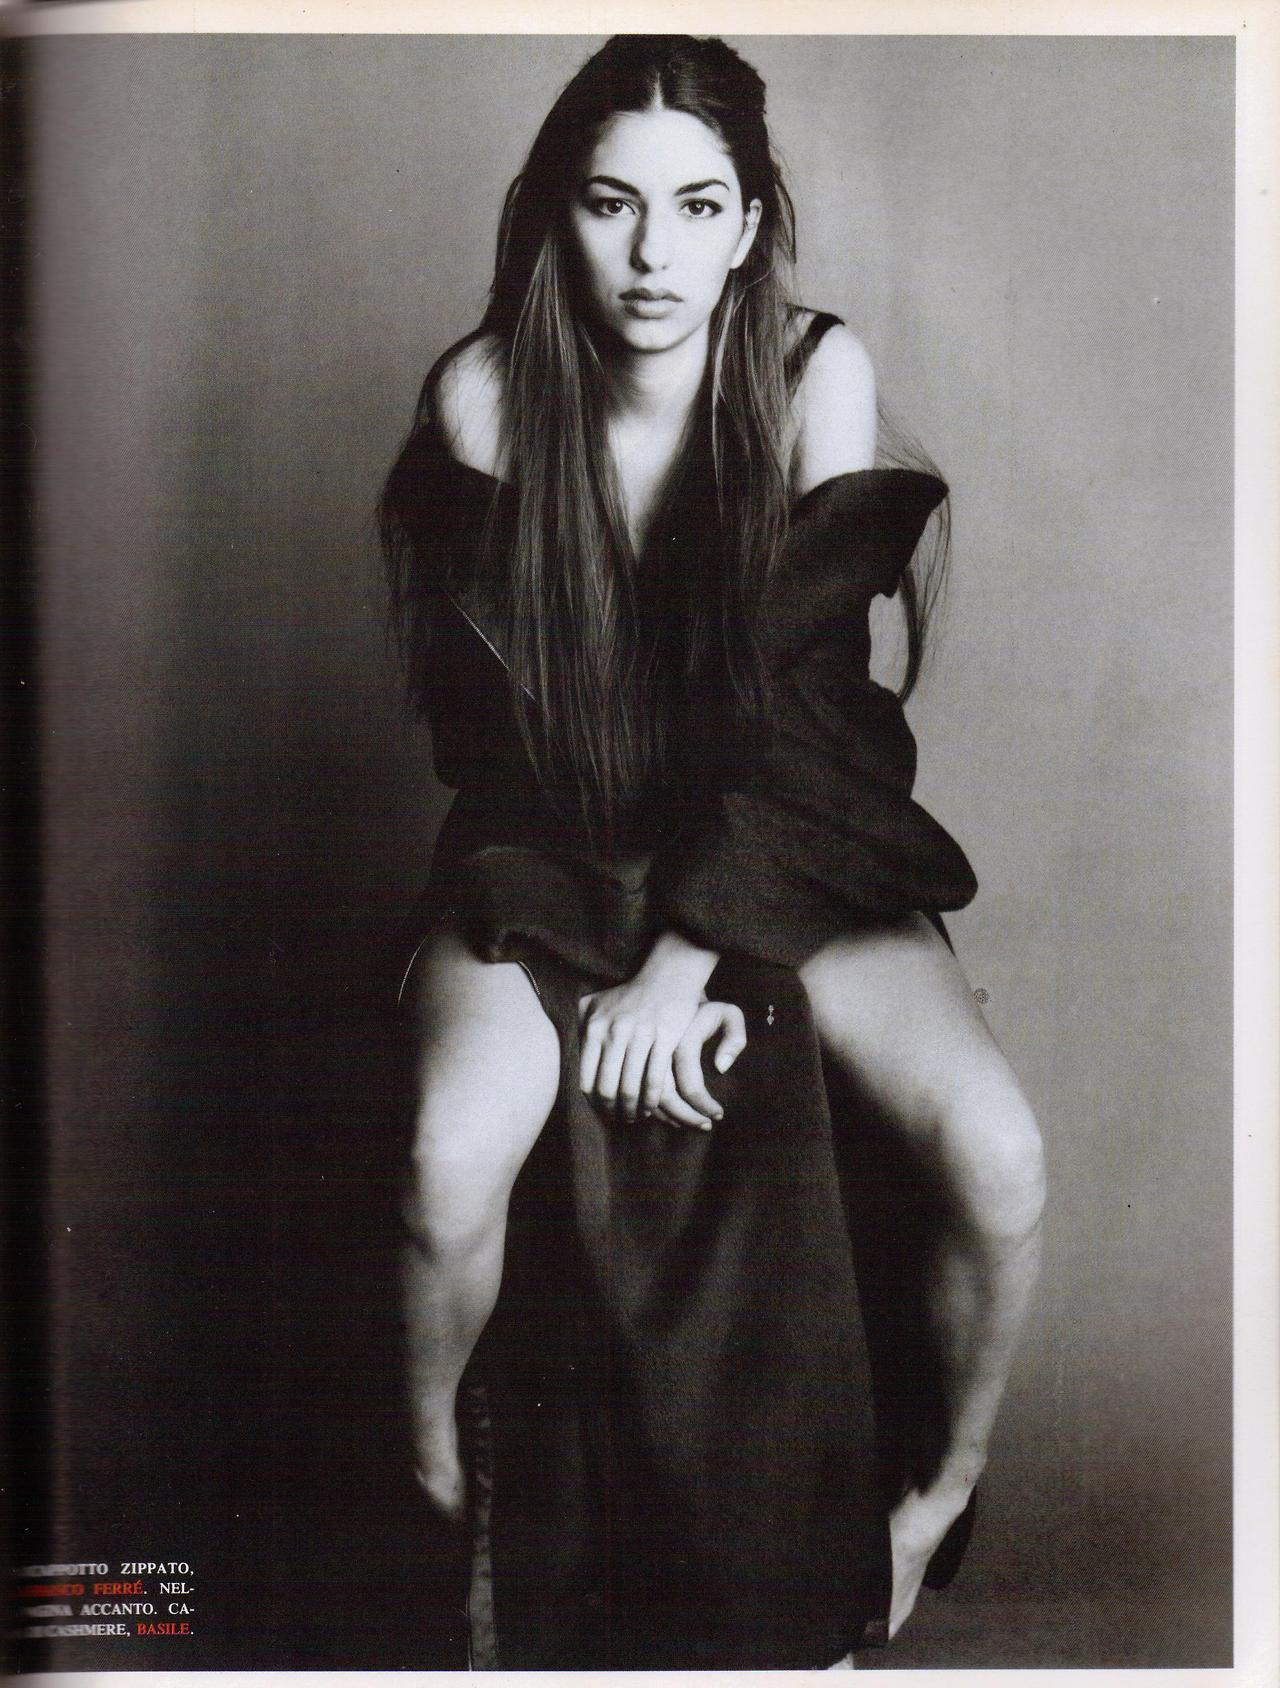 suicideblonde:  Sofia Coppola photographed by Steven Meisel for Vogue Italia, December 1992